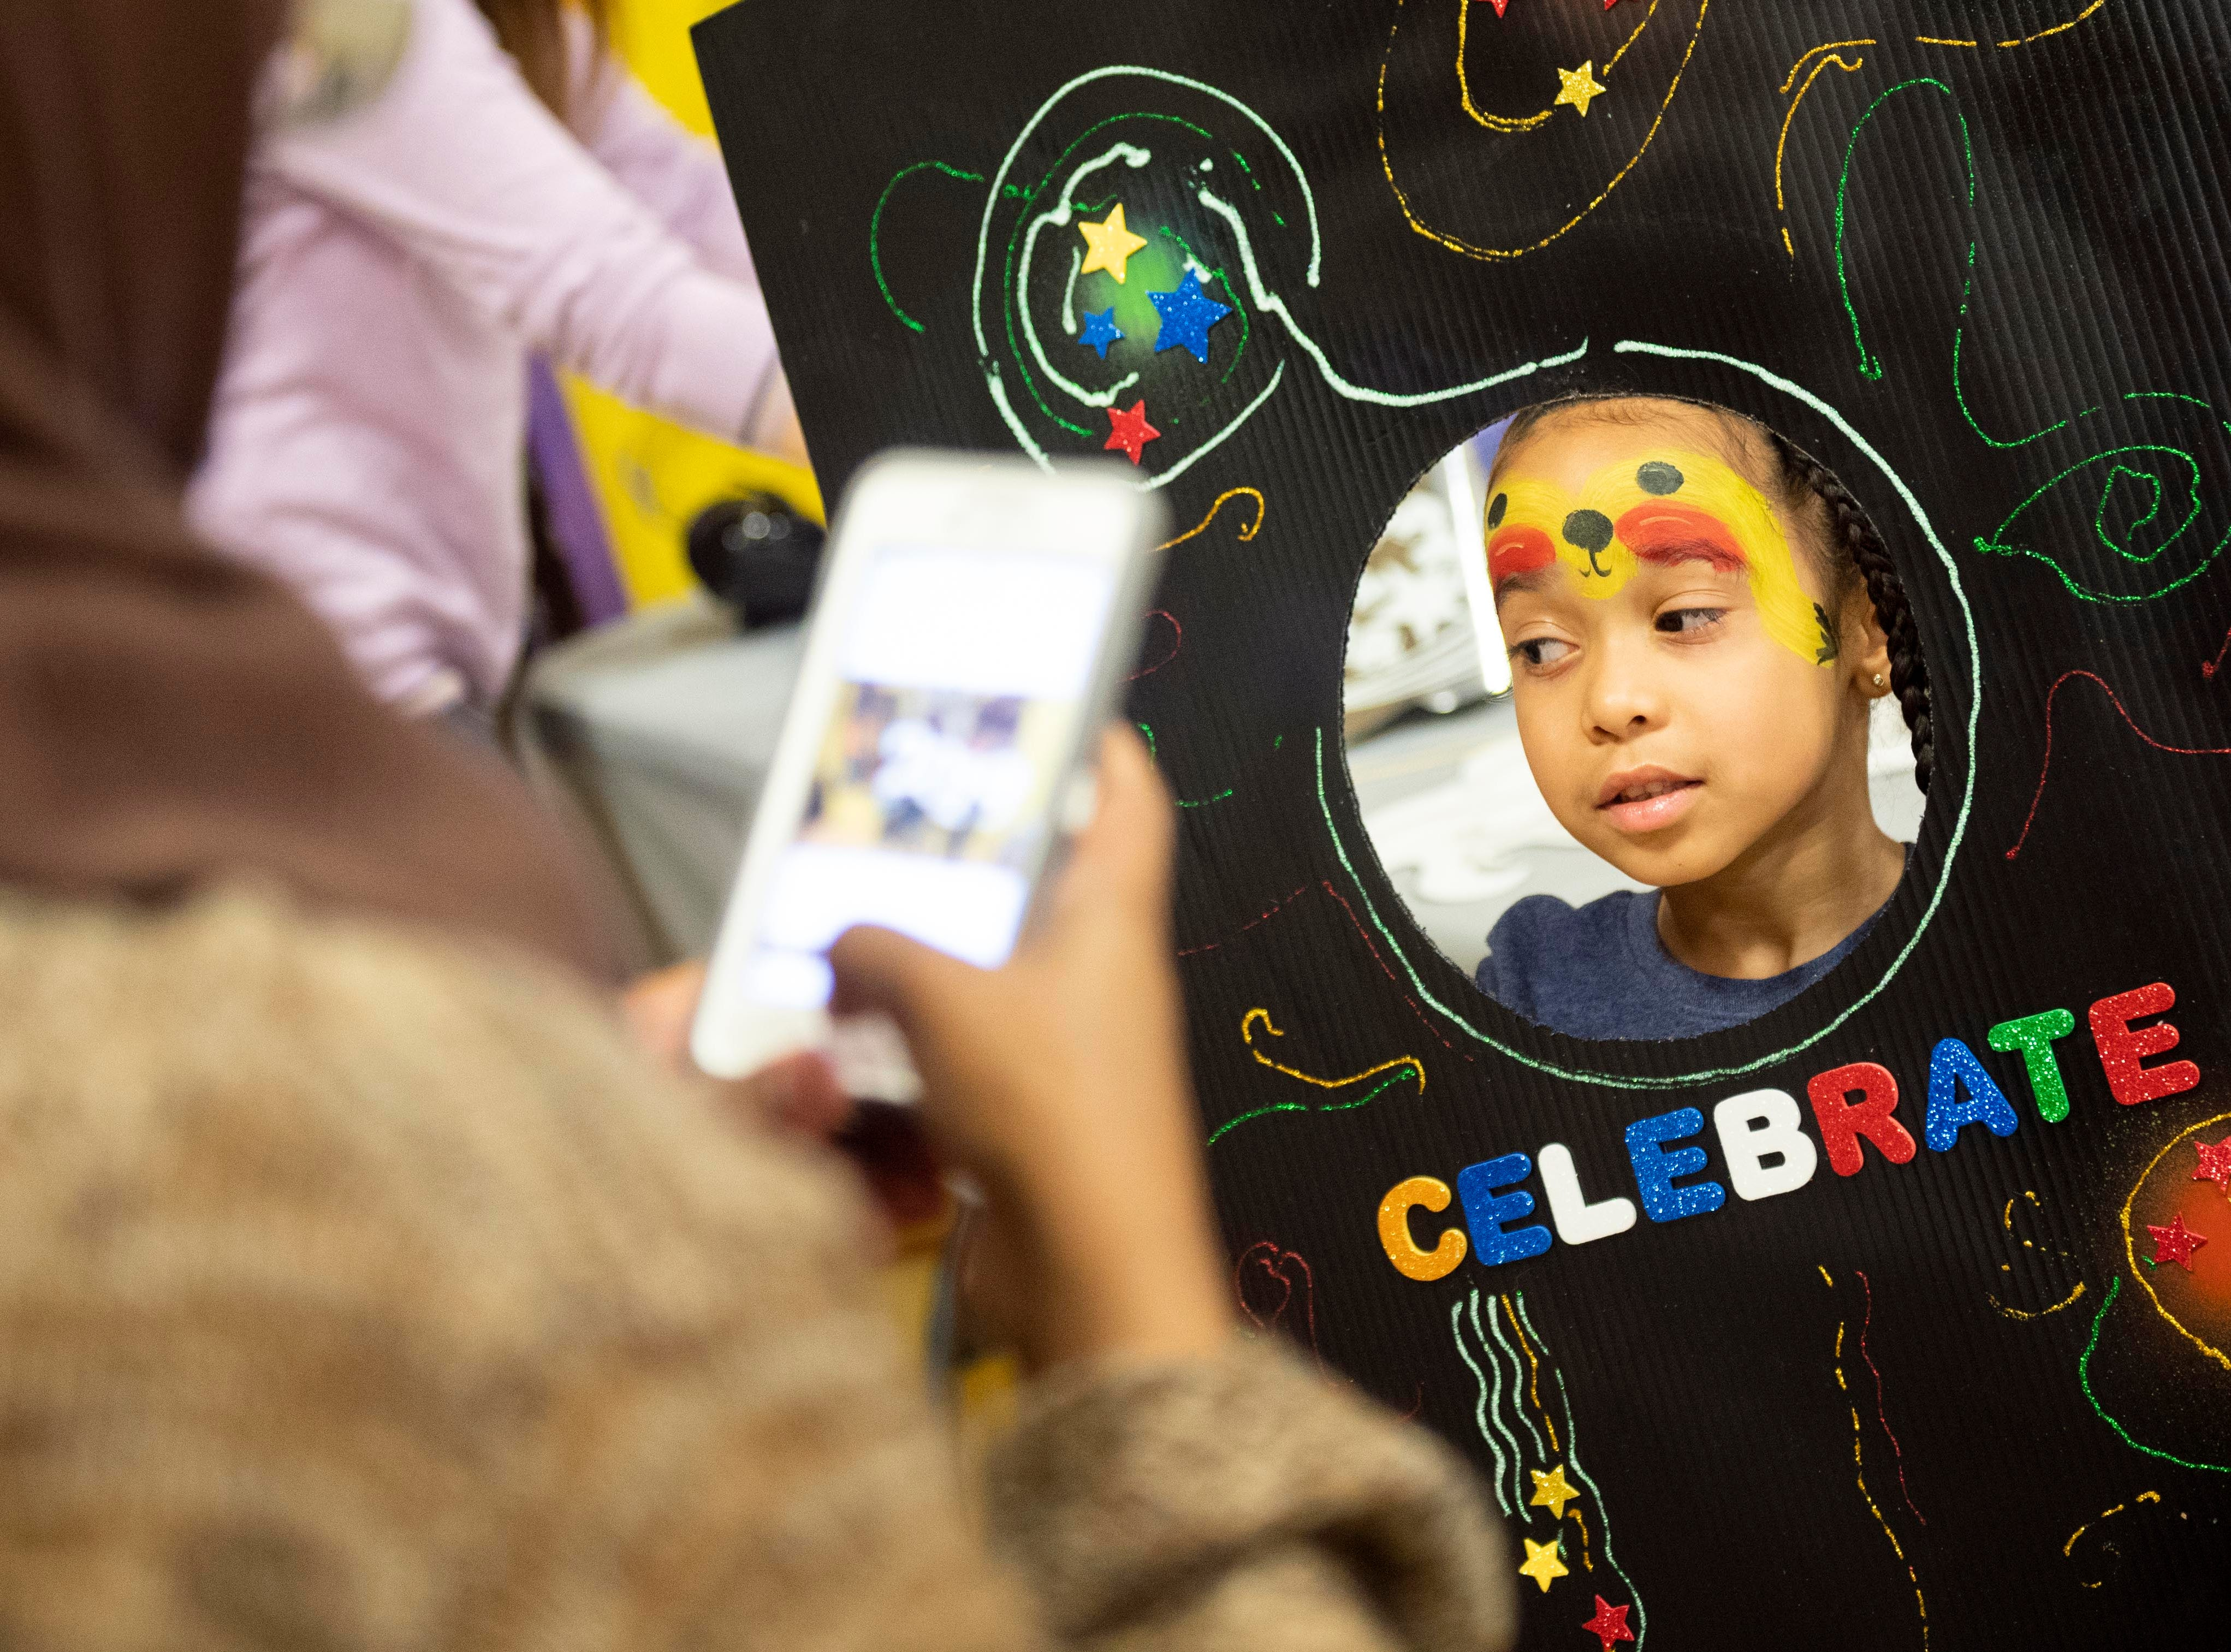 A child sticks her head out of one of the many props avalible for people to take pictures with during the Children's Countdown to 2019 at Voni Grimes Gym, Monday, Dec. 31, 2018. Hundreds of kids rang in 2019 with a balloon drop at 8 p.m.